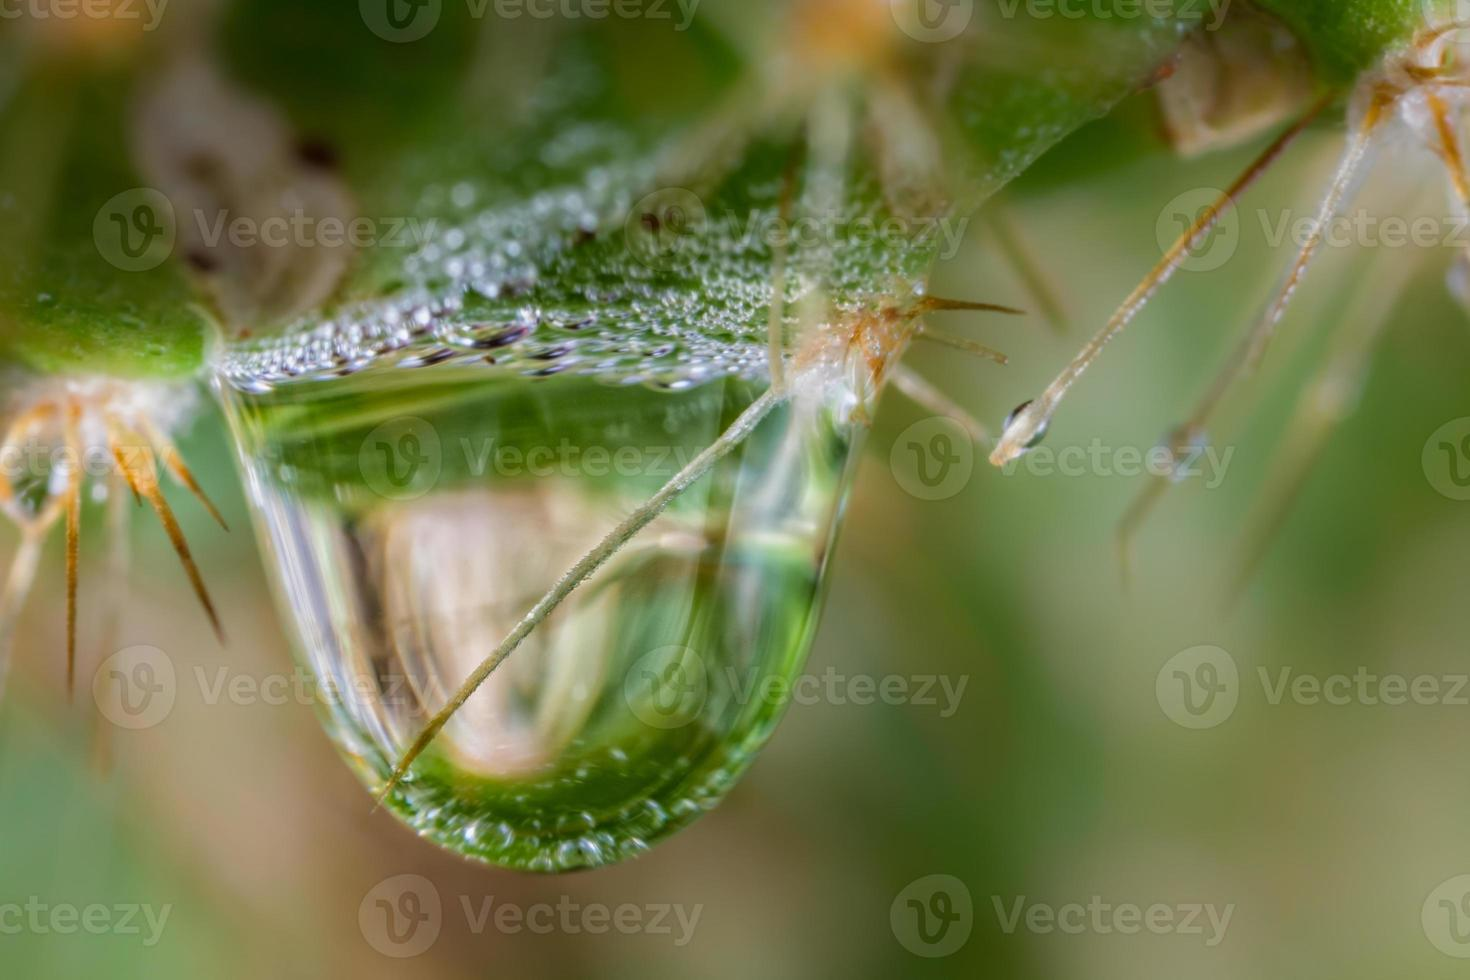 Cactus and water photo